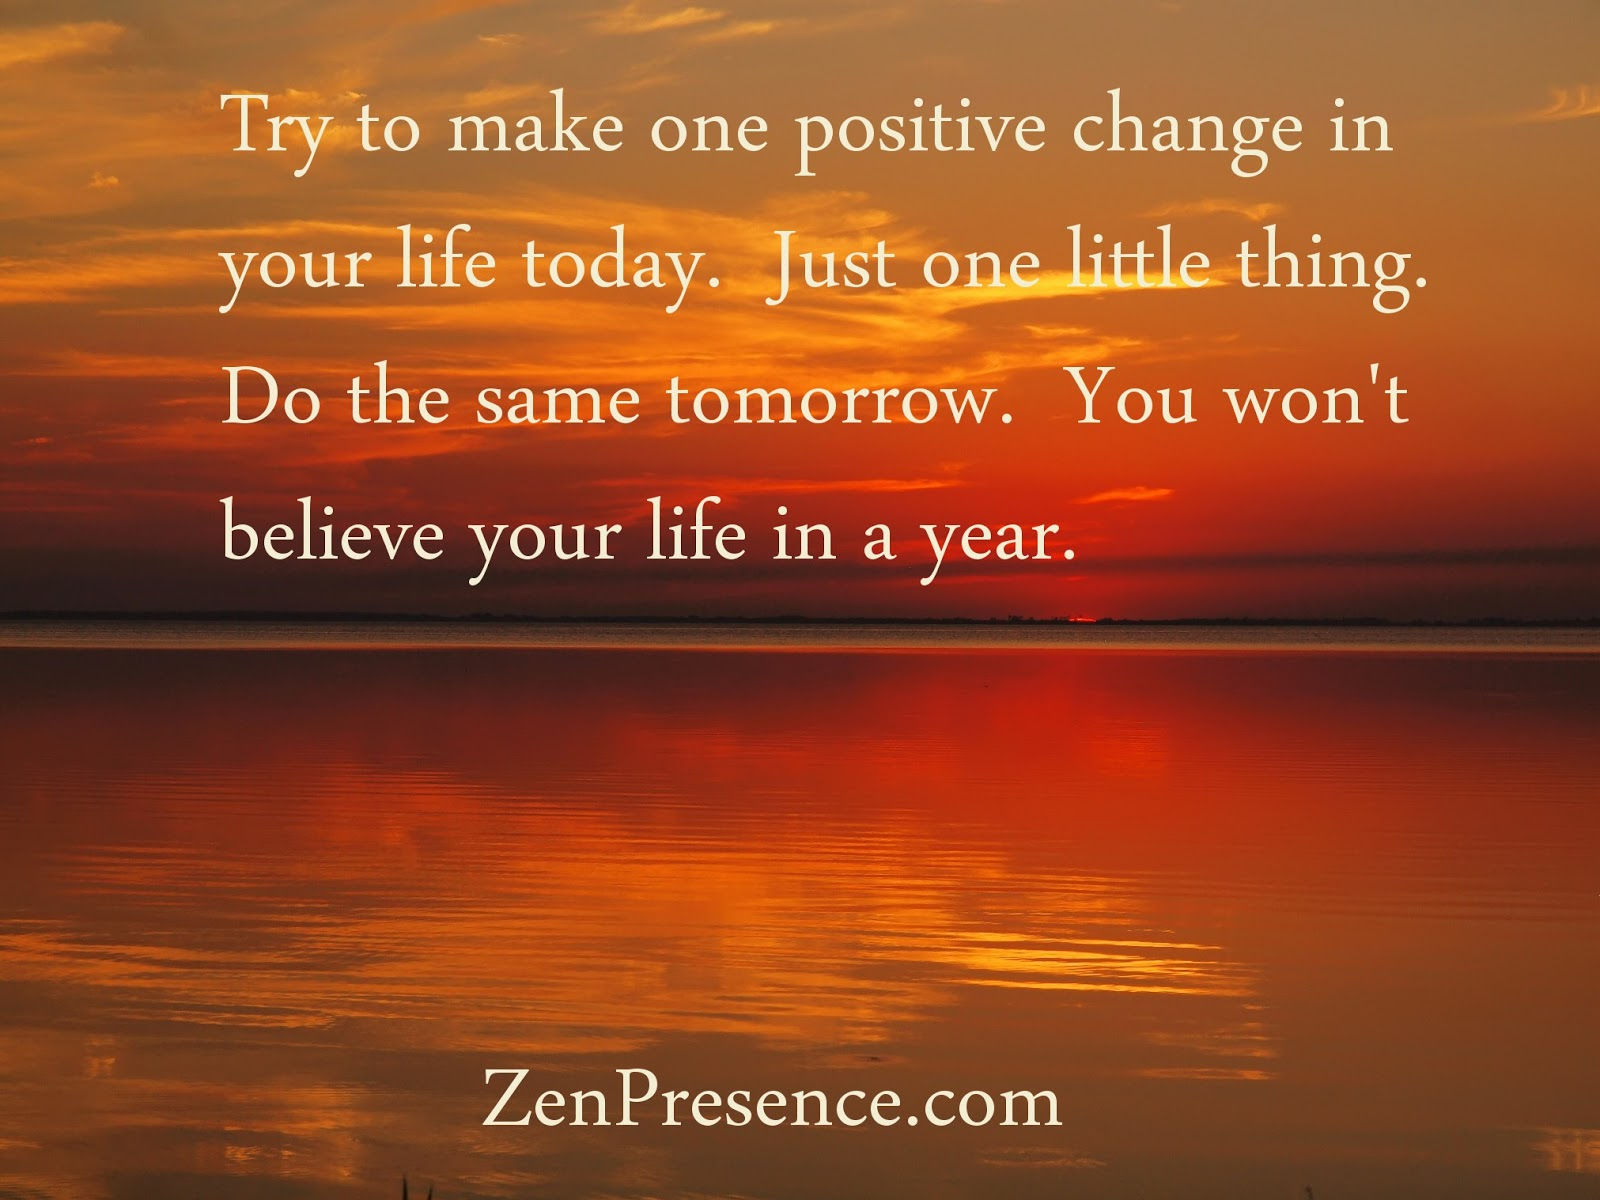 50 inspiring quotes on change motivate your life today - HD1600×1200